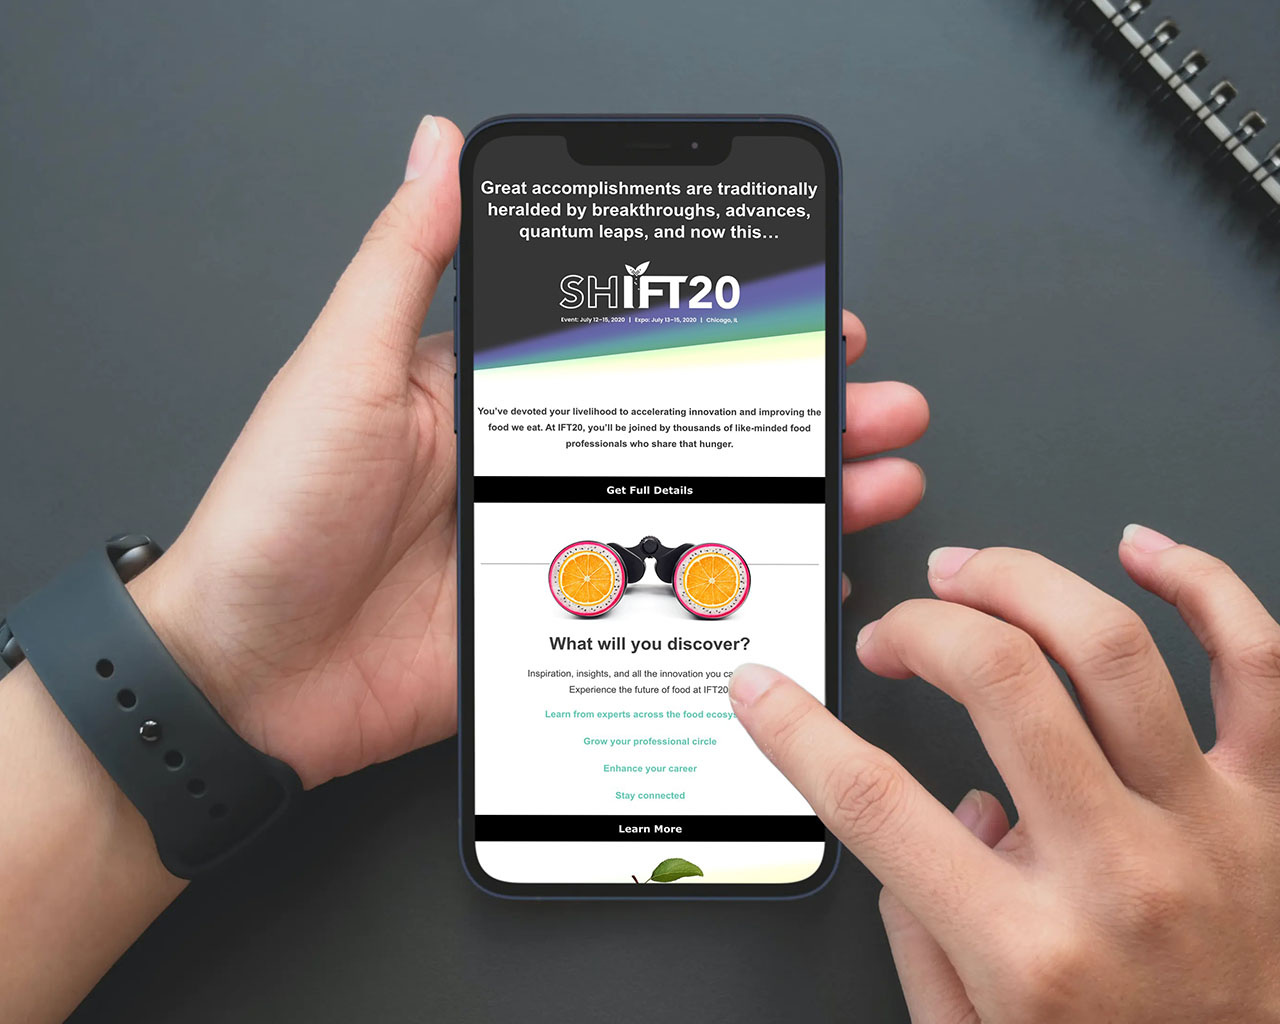 Hands holding a phone with an email promoting SHIFT 2020 on the screen